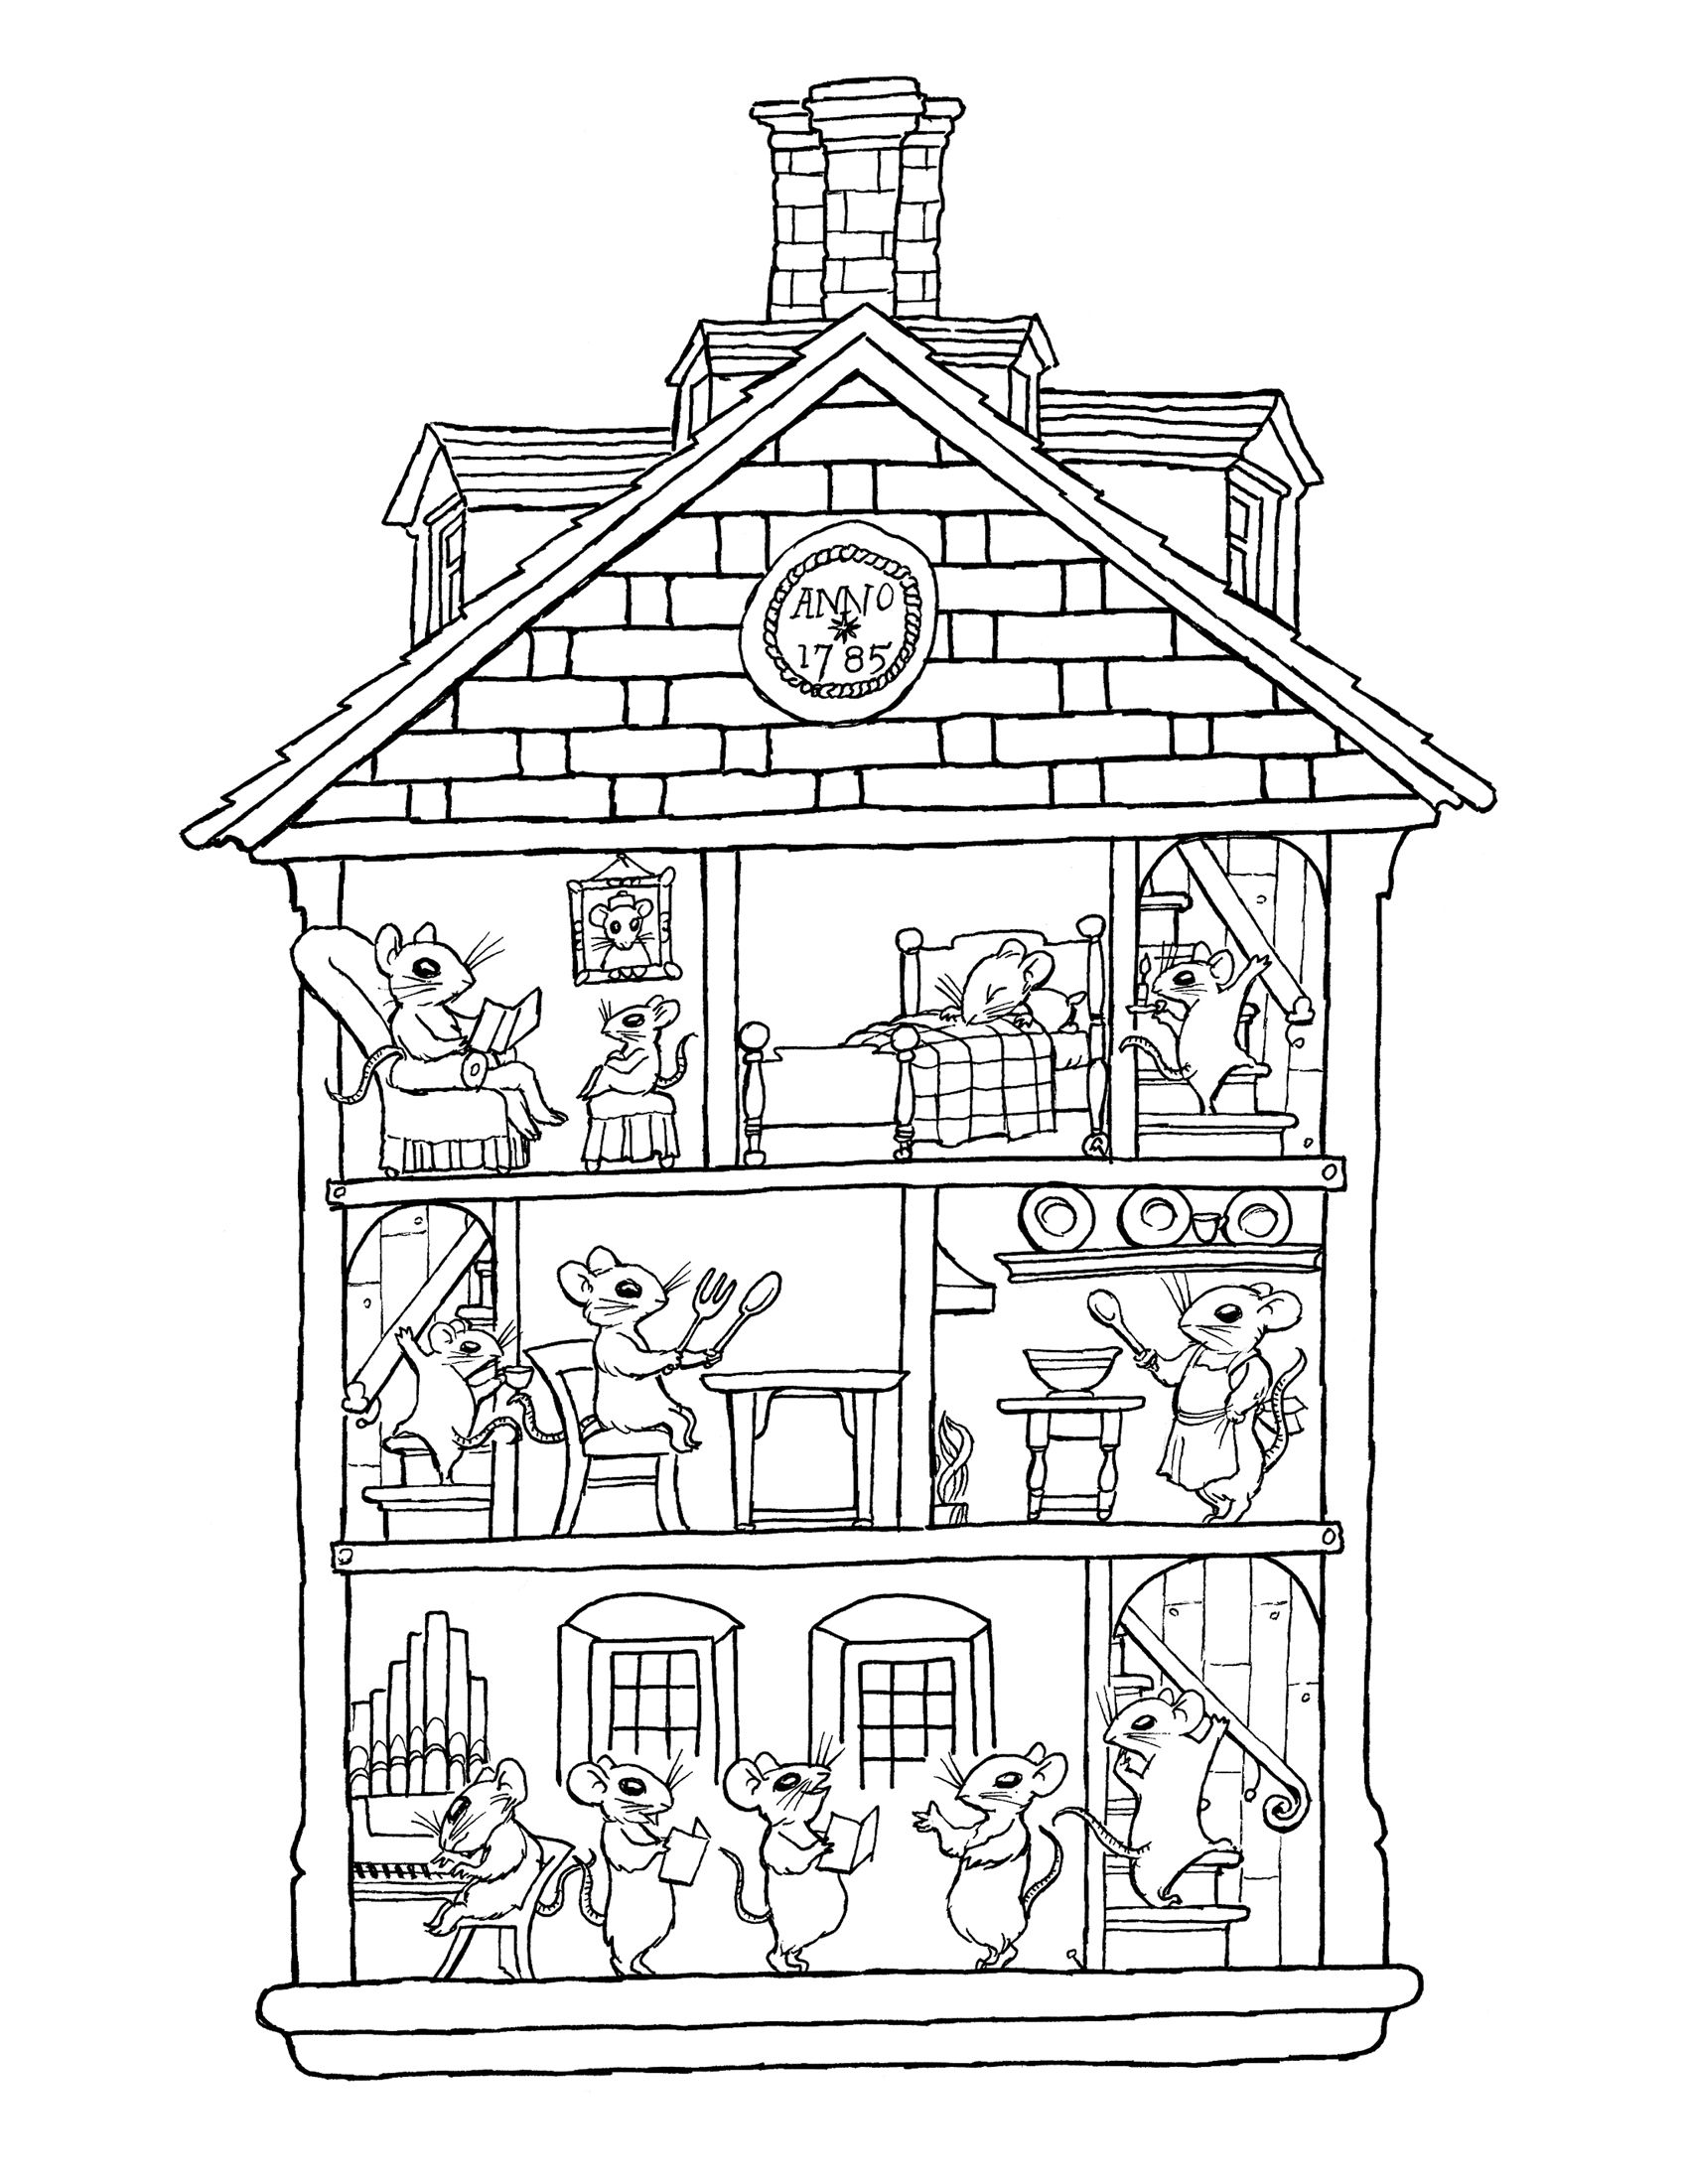 Houses And Homes Coloring Pages For Preschool Kindergarten Elementary School Children To Print Color Description From Mywallpaperninja